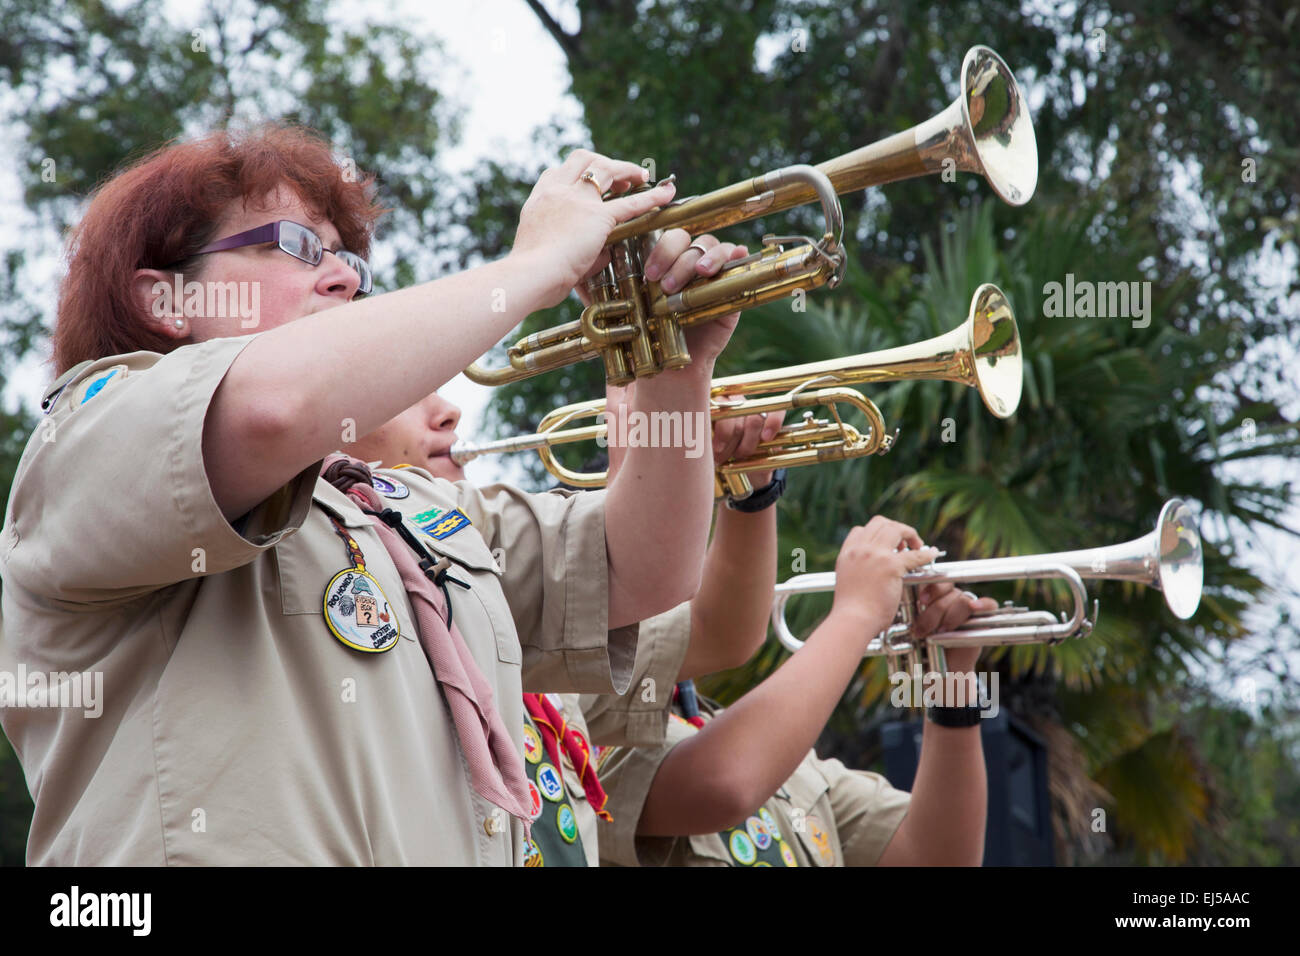 Trumpets play Taps at 2014 Memorial Day Event, Los Angeles National Cemetery, California, USA - Stock Image